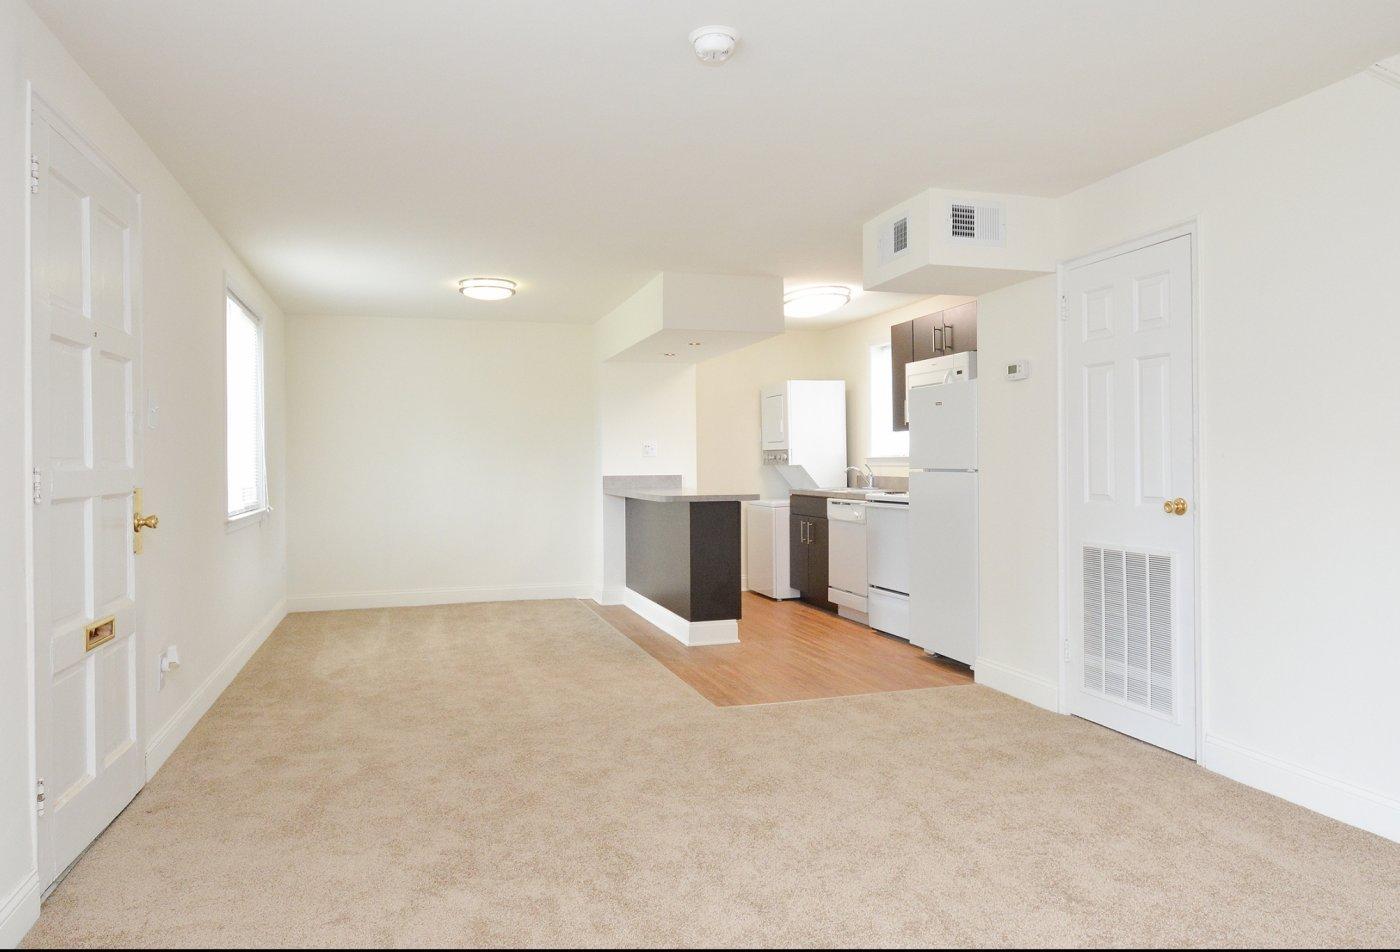 Best One Bedroom Apartments In Wilmington Delaware Greenville On 141 Apartments Townhomes With Pictures